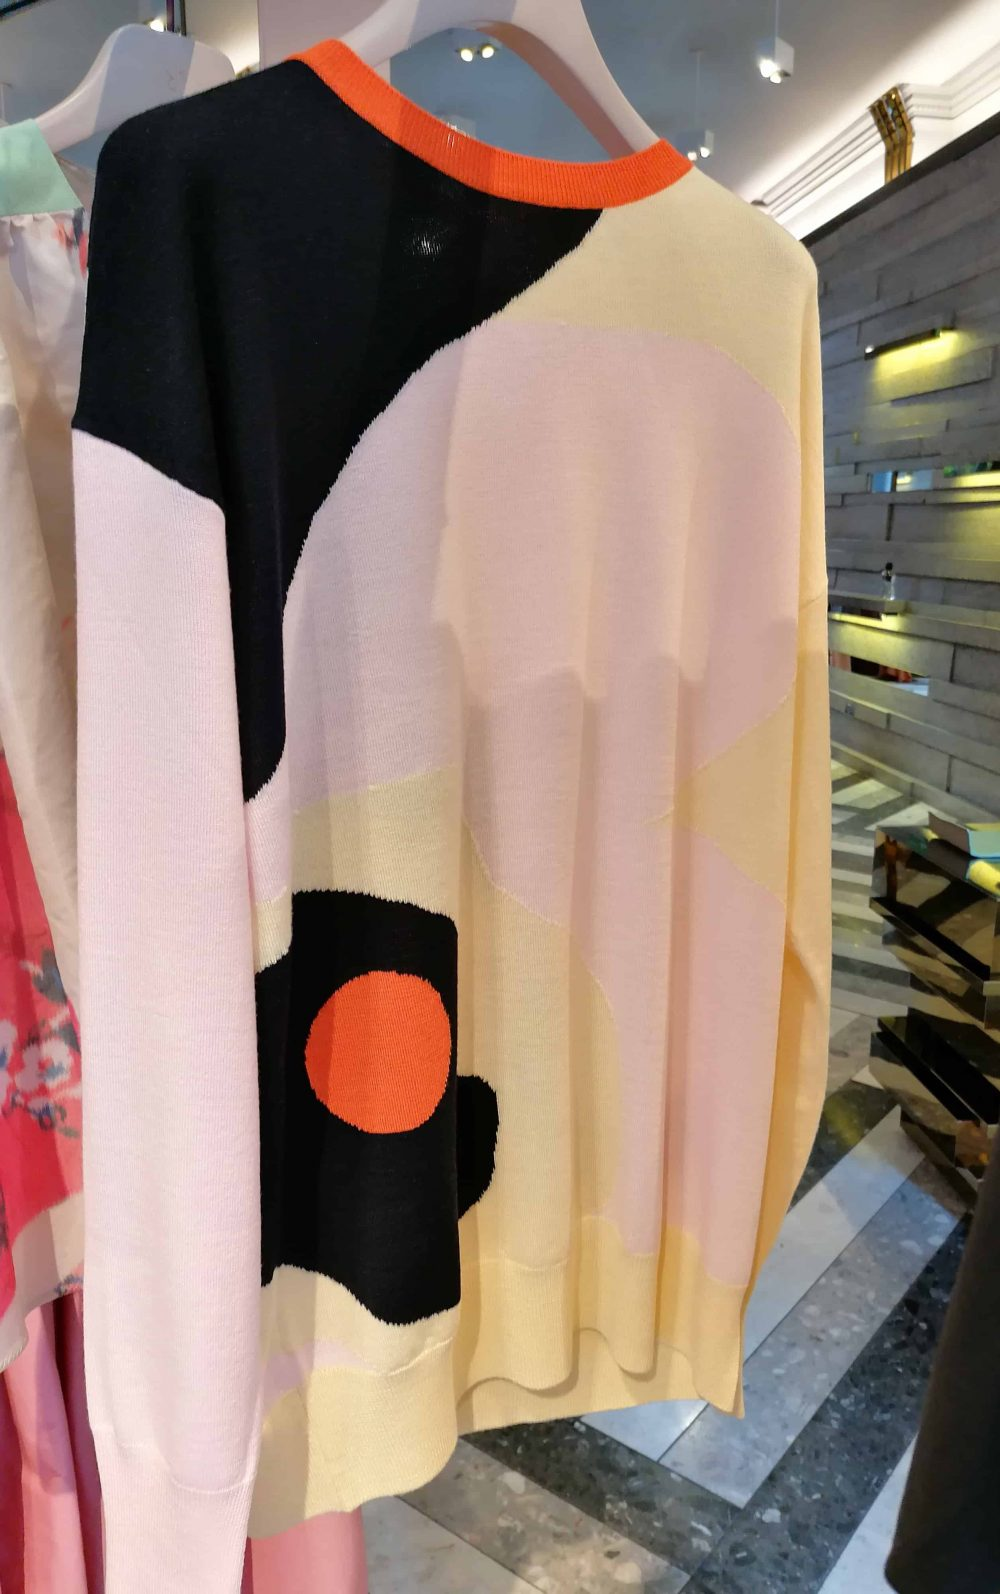 sweater by fashion designer Roksanda Ilincic, Roksanda shop, Mount Street, Mayfair, Fashion Tours London, fashion walks and shopping tours for fashionistas